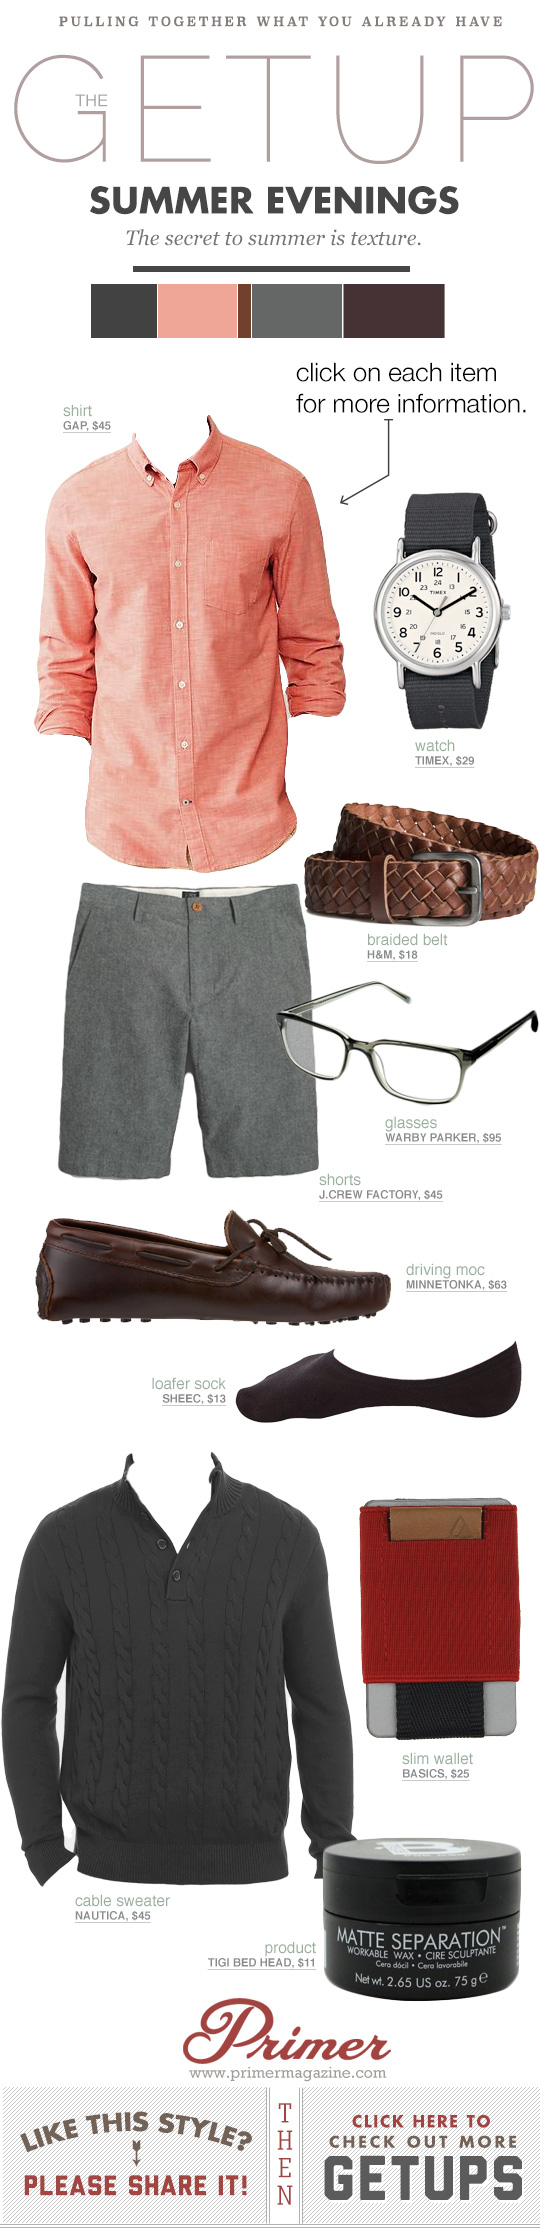 Getup Summer Evenings - Salmon shirt, gray shorts, brown leather loafers with glasses